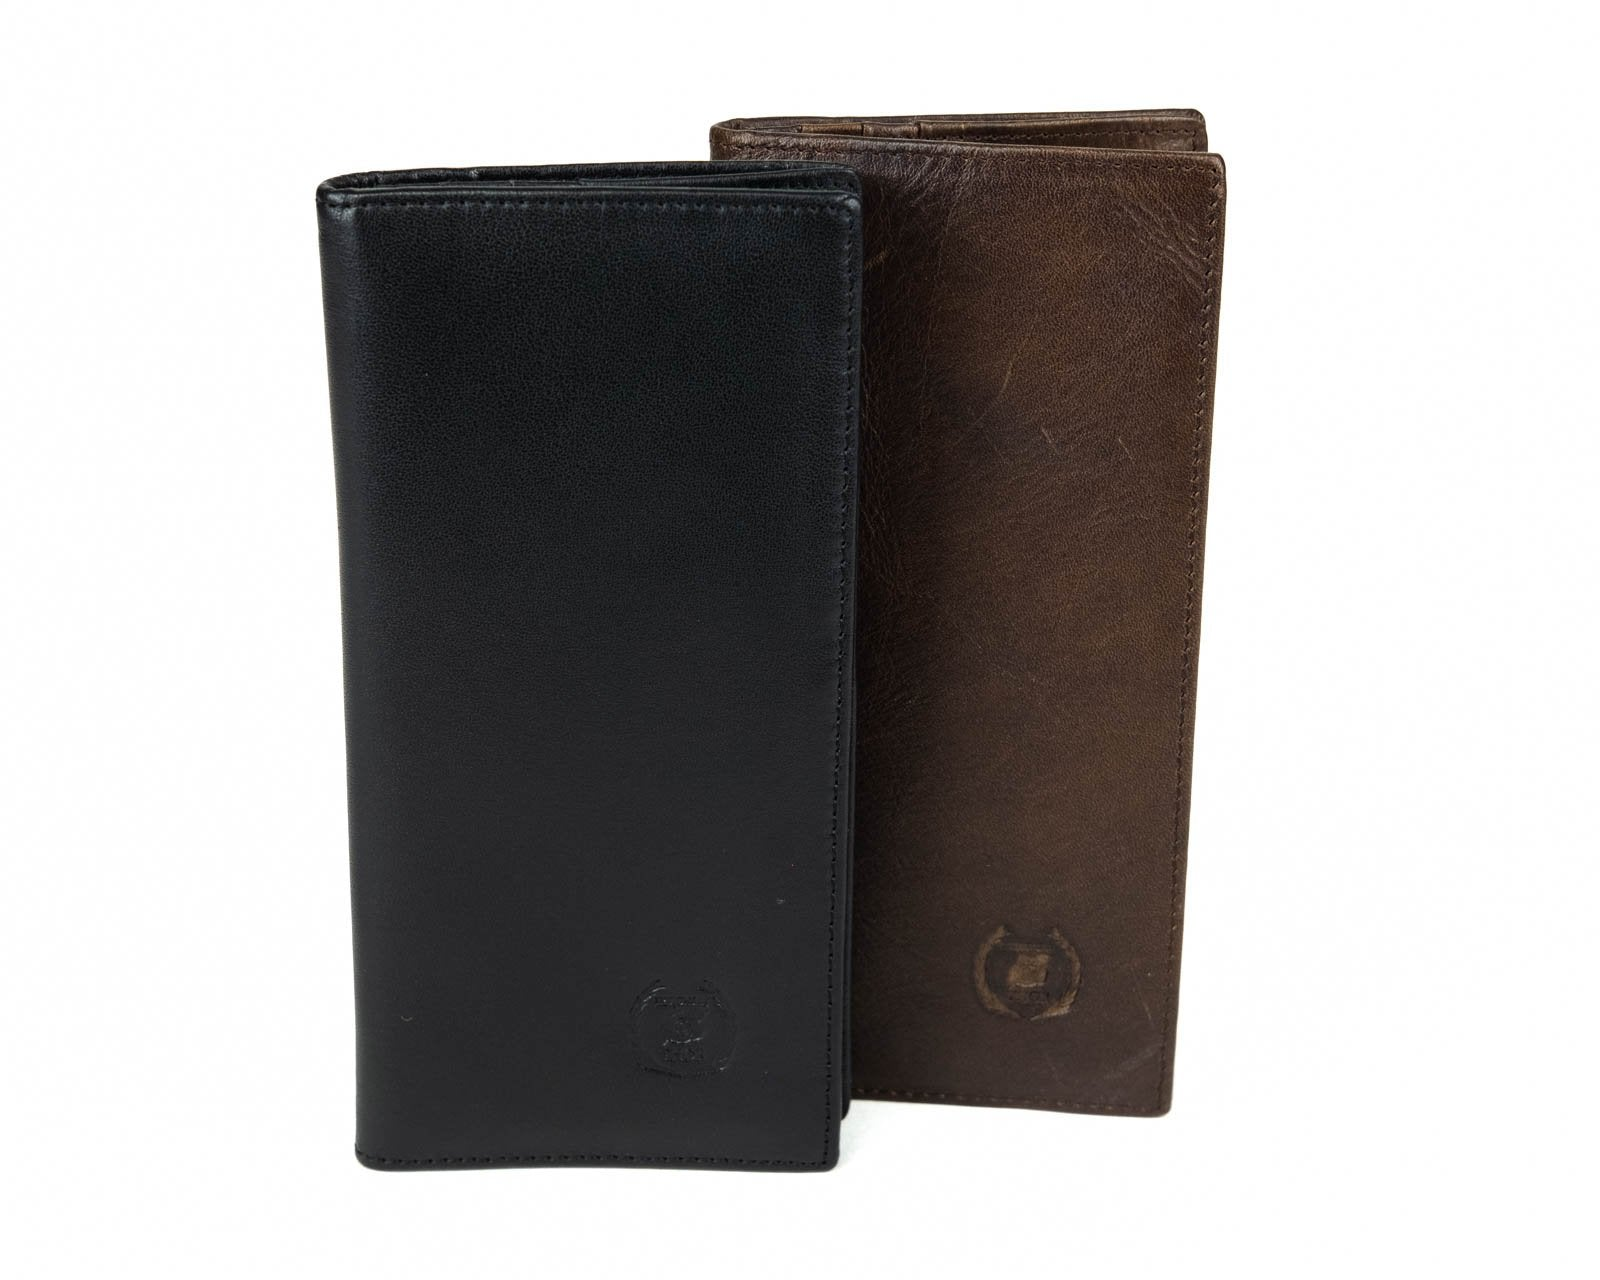 The Charles Bifold Wallet